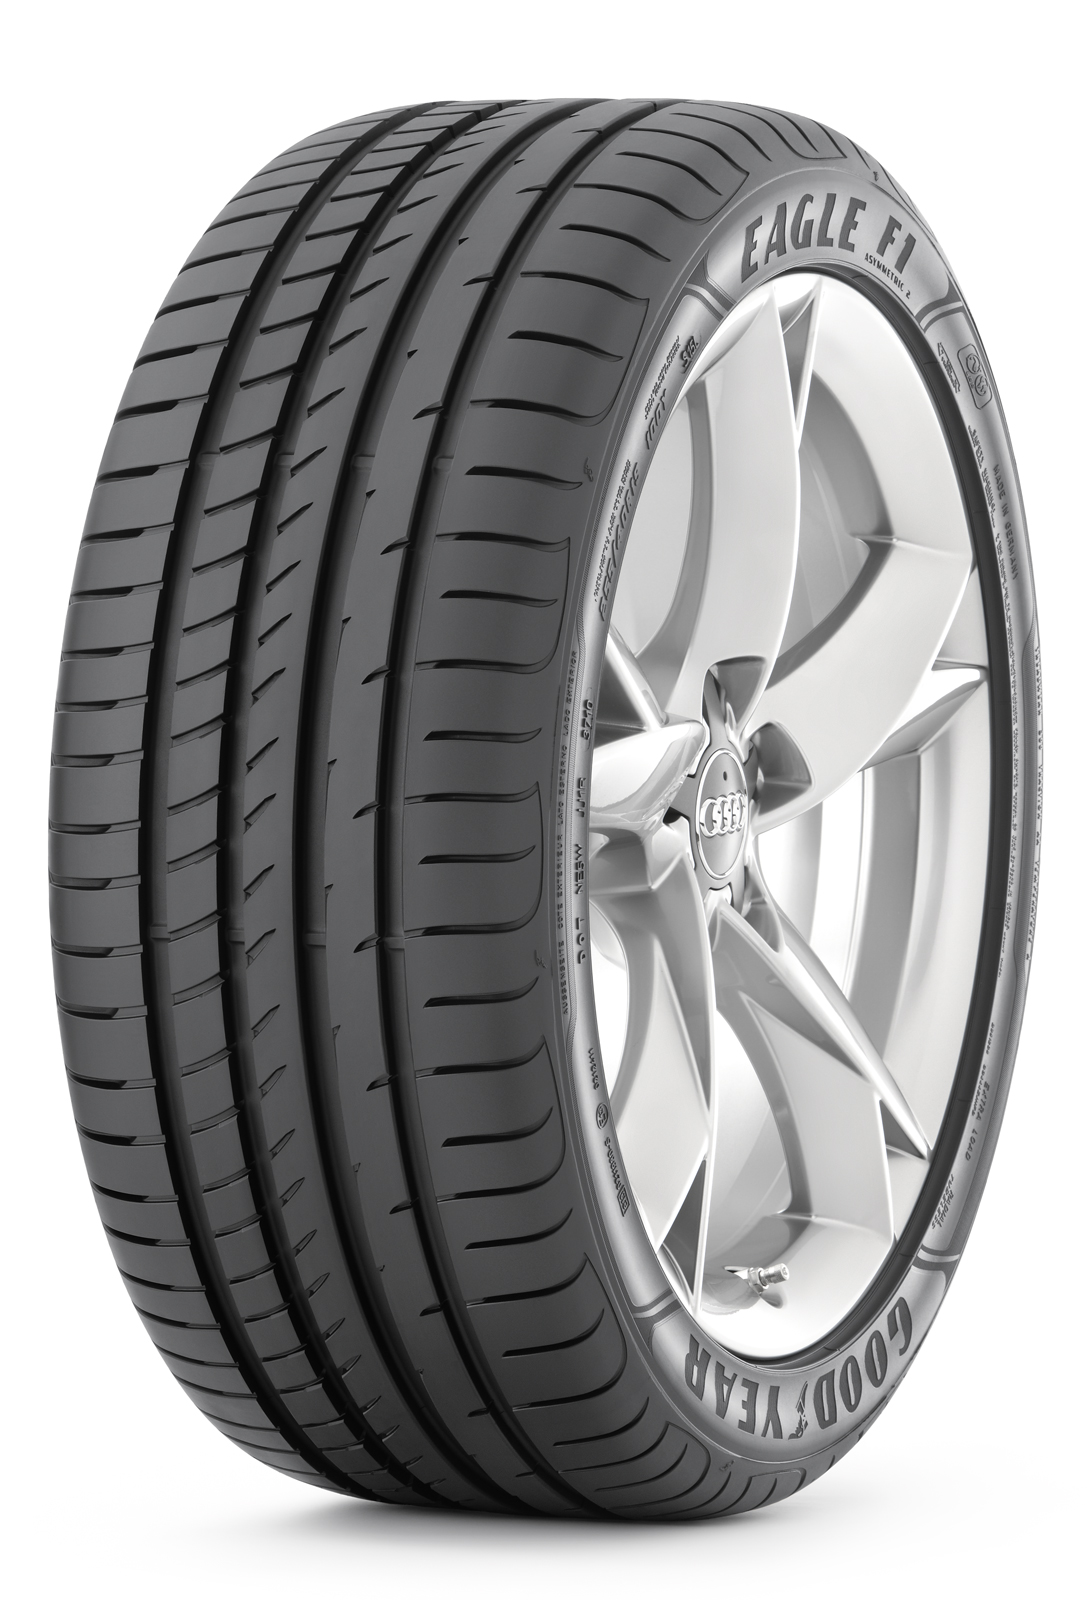 245/40R18 GOODYEAR EAGLE F1 (ASYMMETRIC) 3 97Y XL (CAR SUMMER)